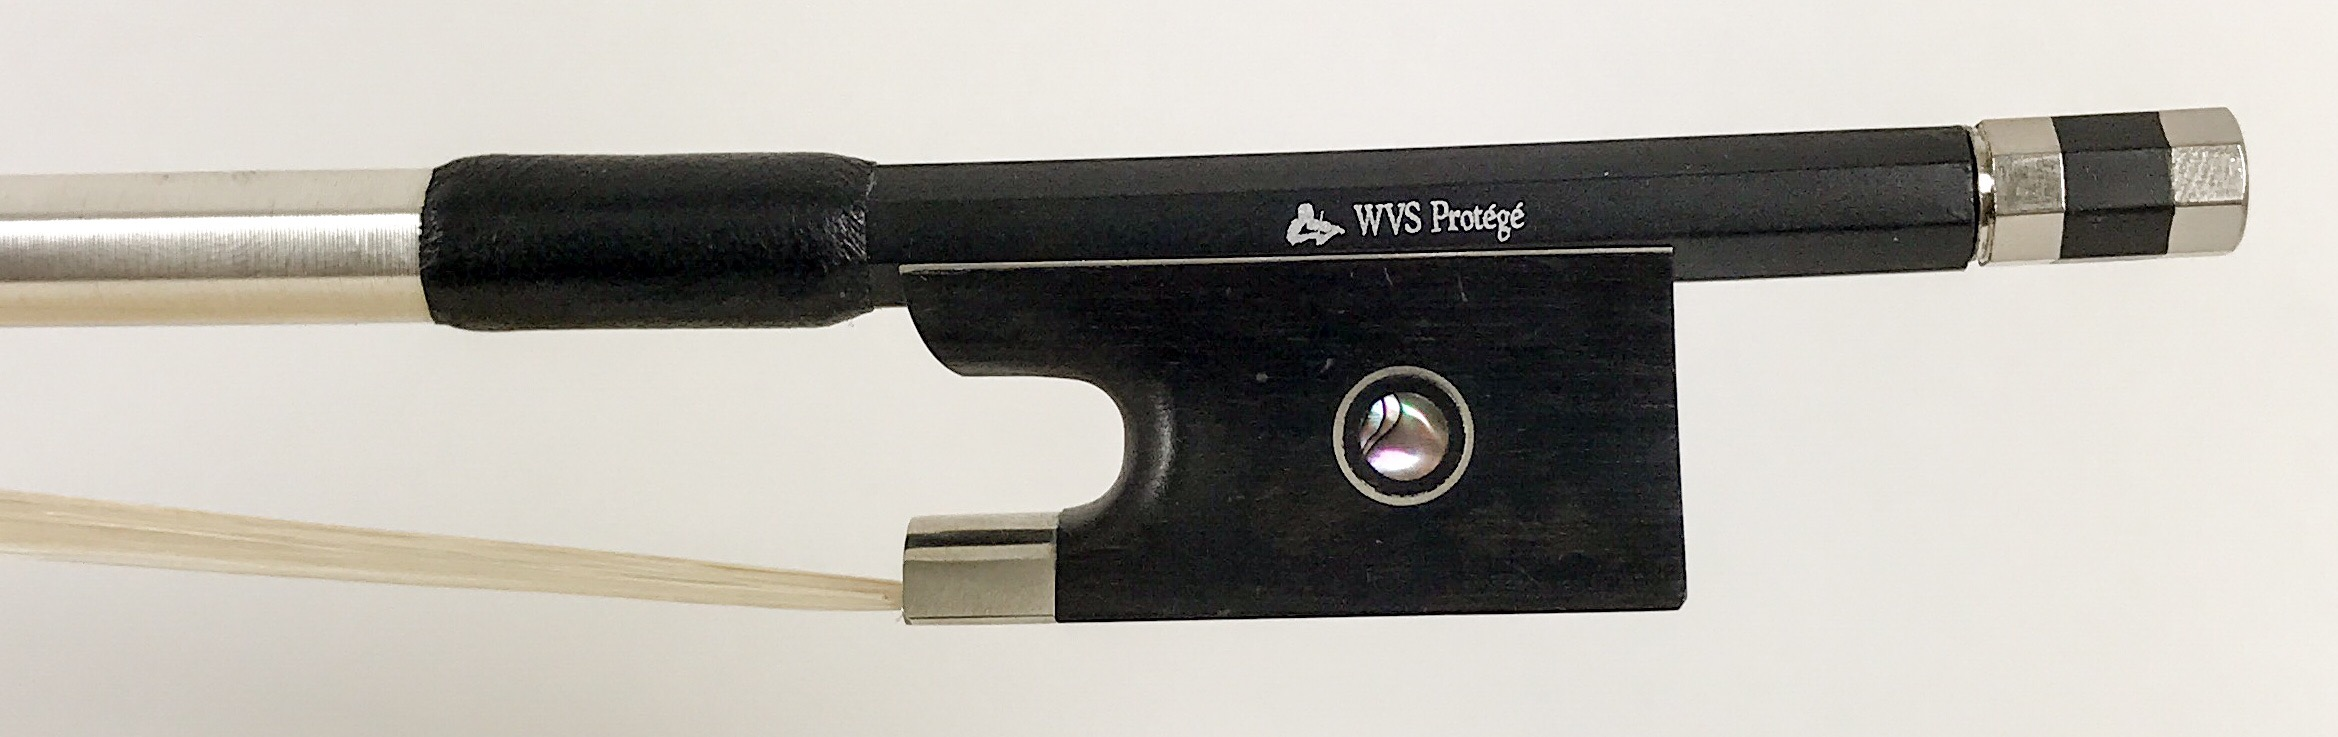 "WVS Protégé Composite Bow   Composite (Fiberglass/Carbon)   Violin - $62 / Viola - $69 / Cello - $88 / Bass - $130  The WVS Protégé violin bow is our most popular model for beginners to advancing students. The composite stick is made from carbon fiber & fiberglass. The rigidity helps with the common ""wiggle"" when playing long slow bow strokes and the balance is much more controllable than any other bows we have handled in this price range. This is a step up from typical fiberglass bows.   *Ask about our generous ""rehair program"" with the Protégé. Sizes: 4/4-1/16"